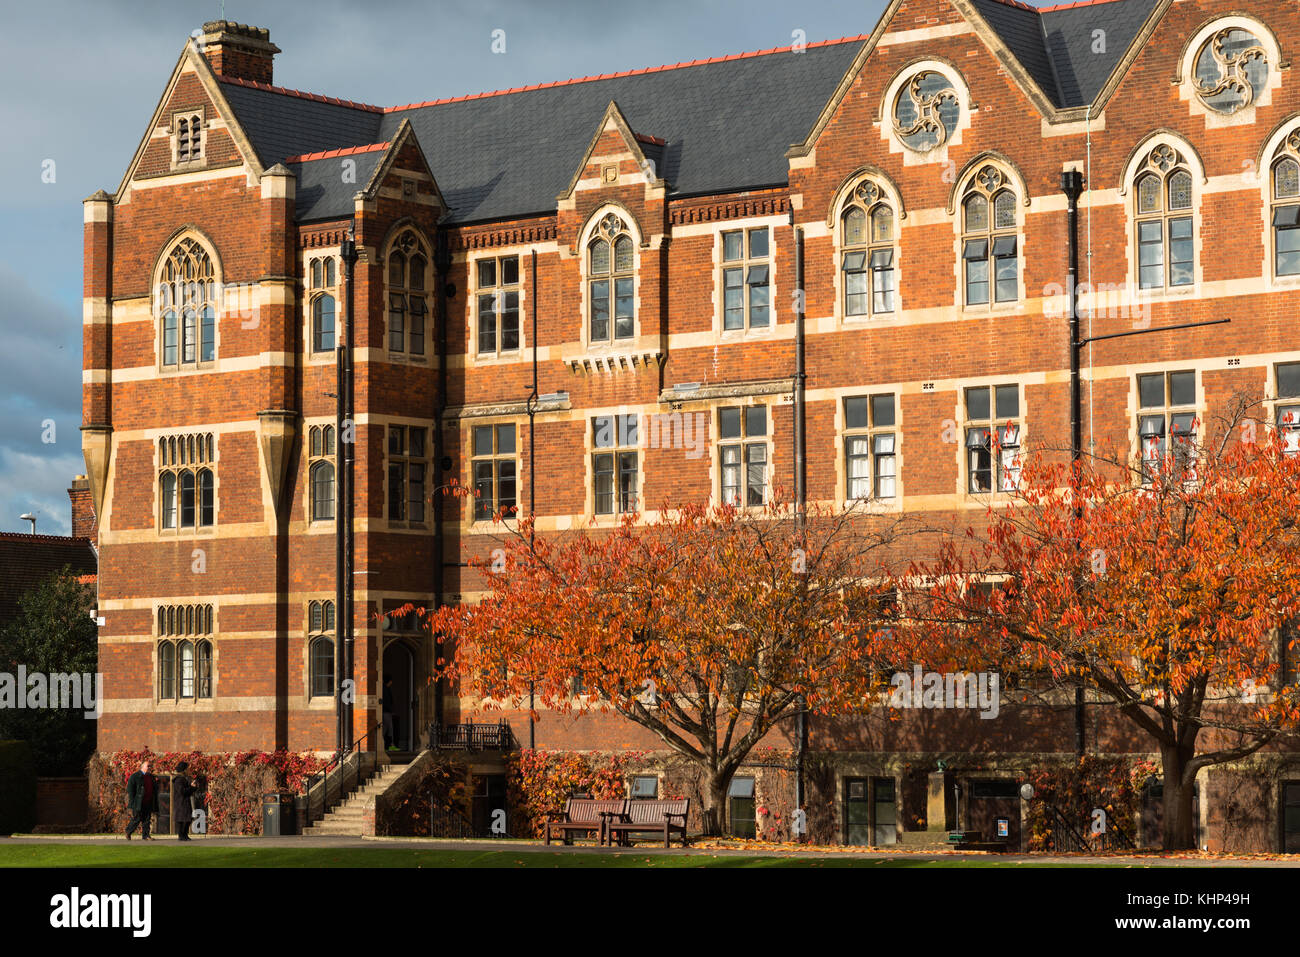 The North House of The Leys school, one of England's premier independent schools. Cambridge, England, UK. - Stock Image